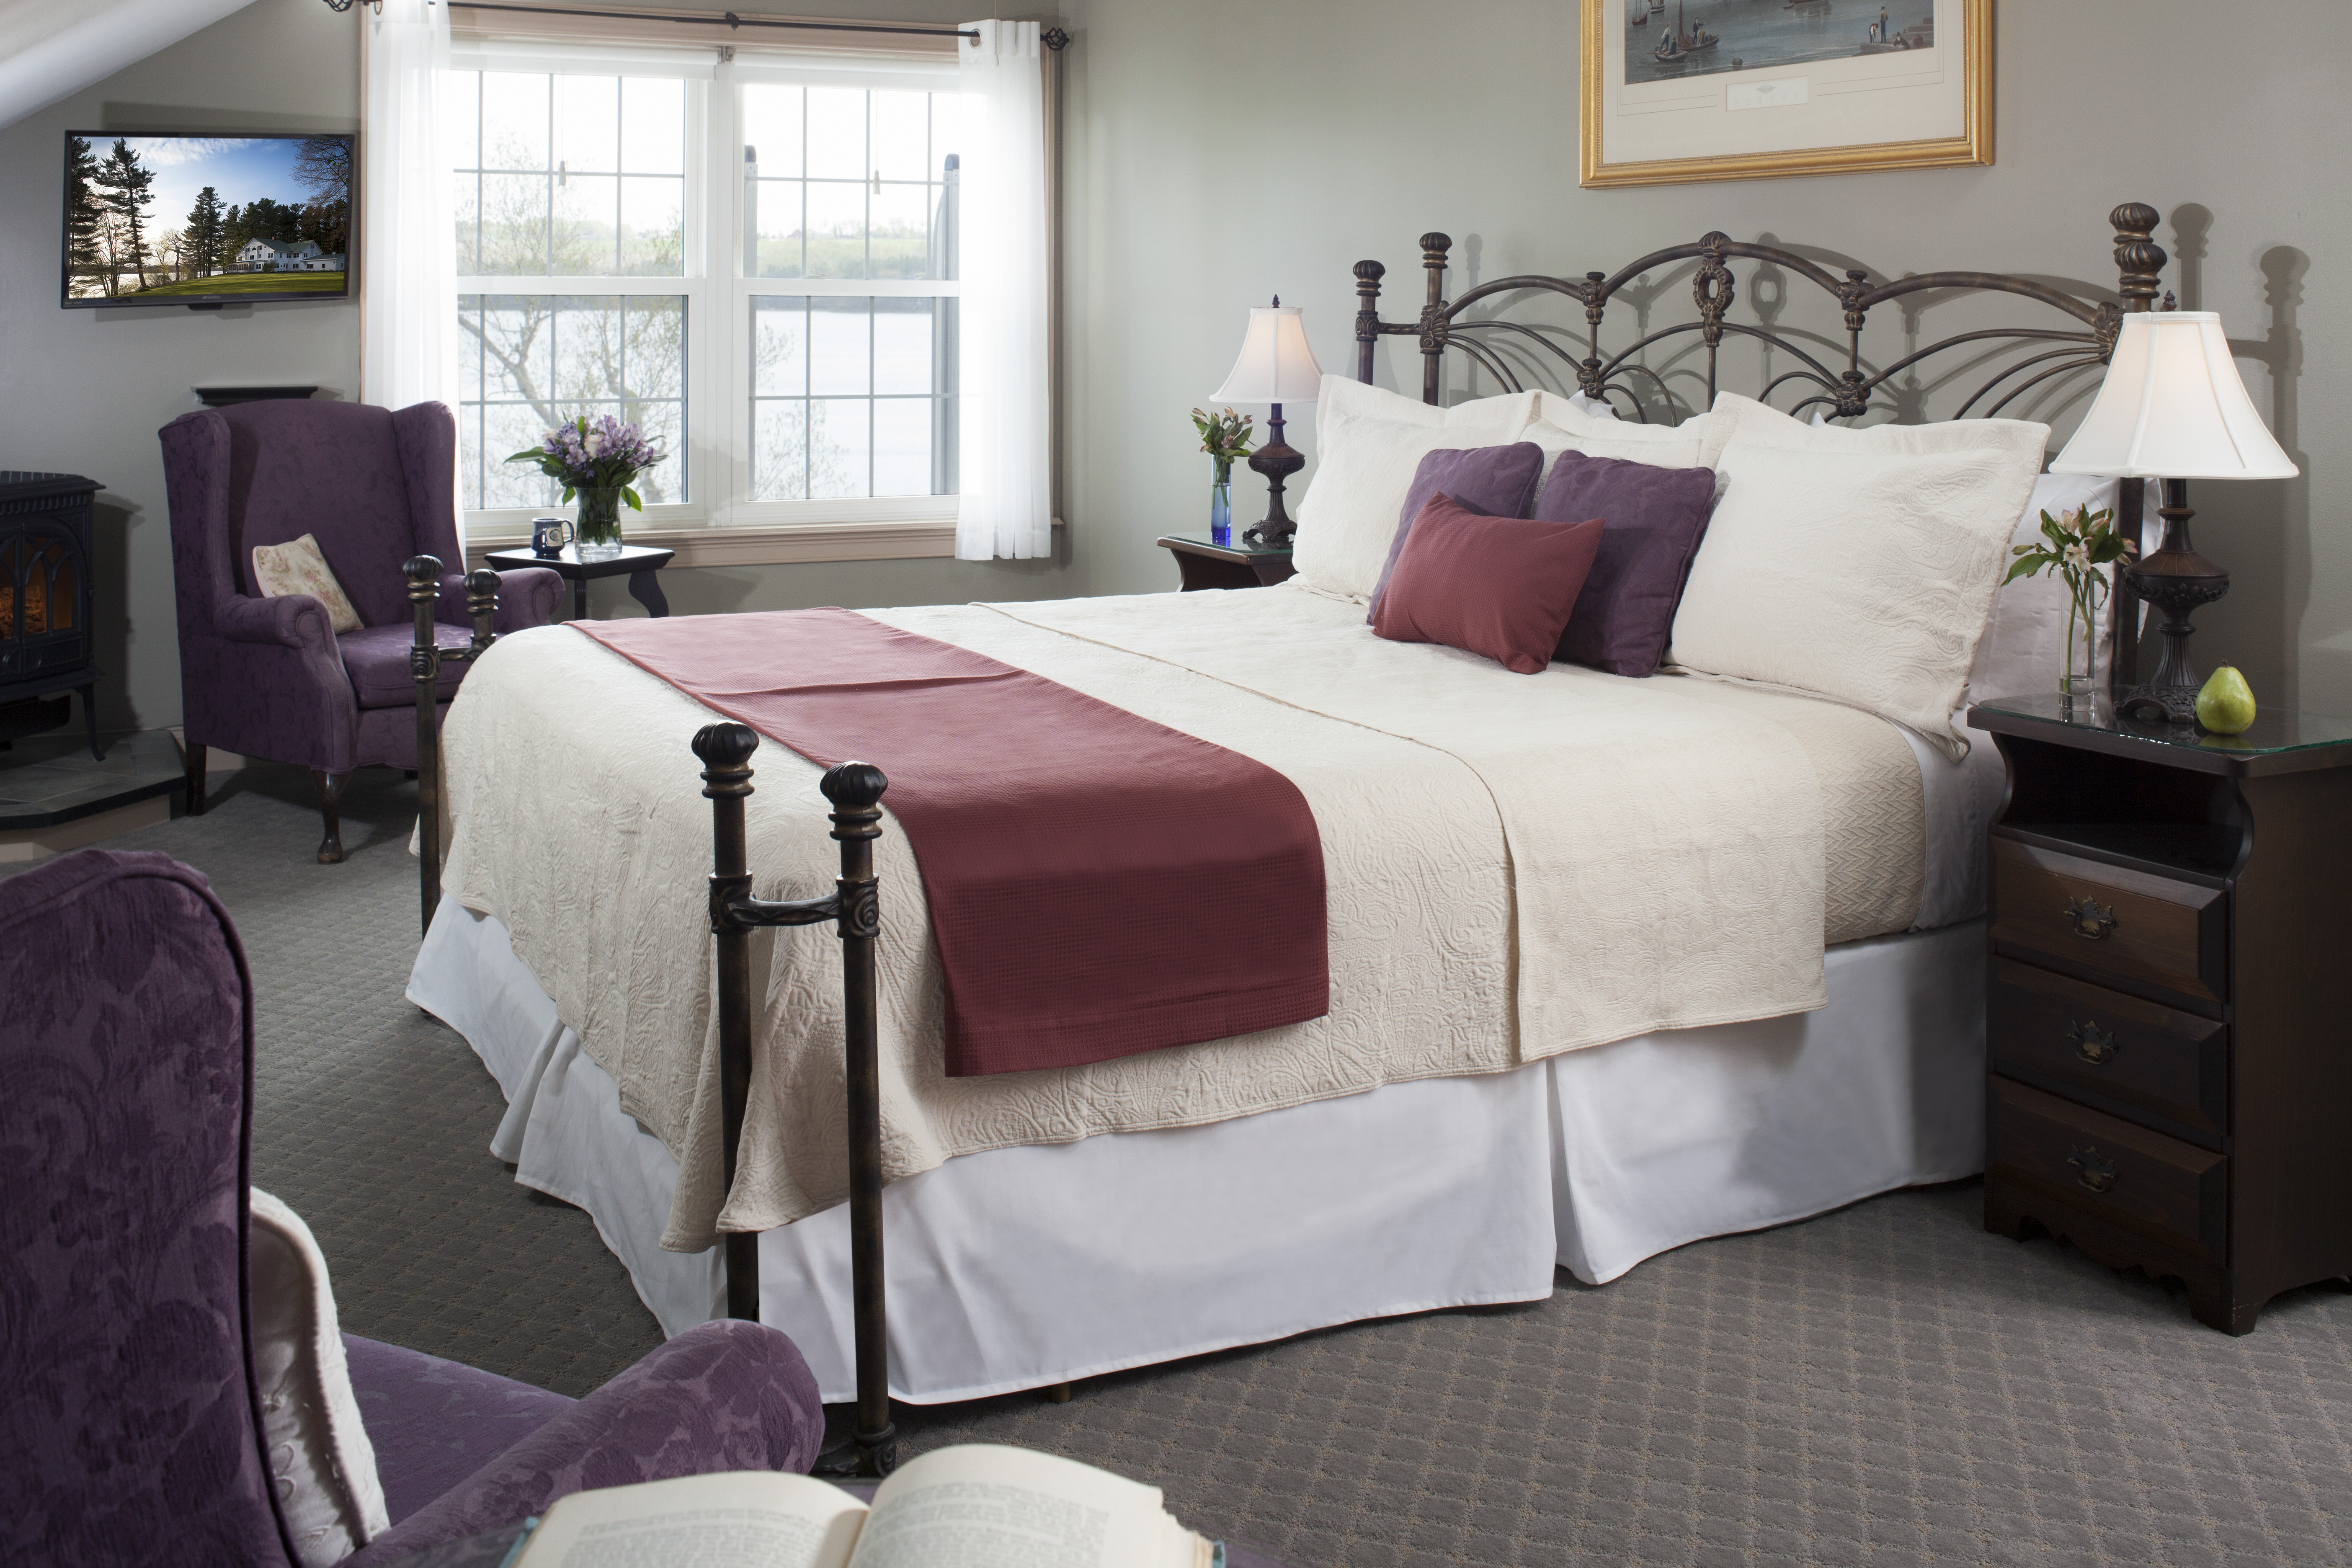 Cadillac Mountain suite, with its huge wrought iron bed and spa is just the spot for some romance.